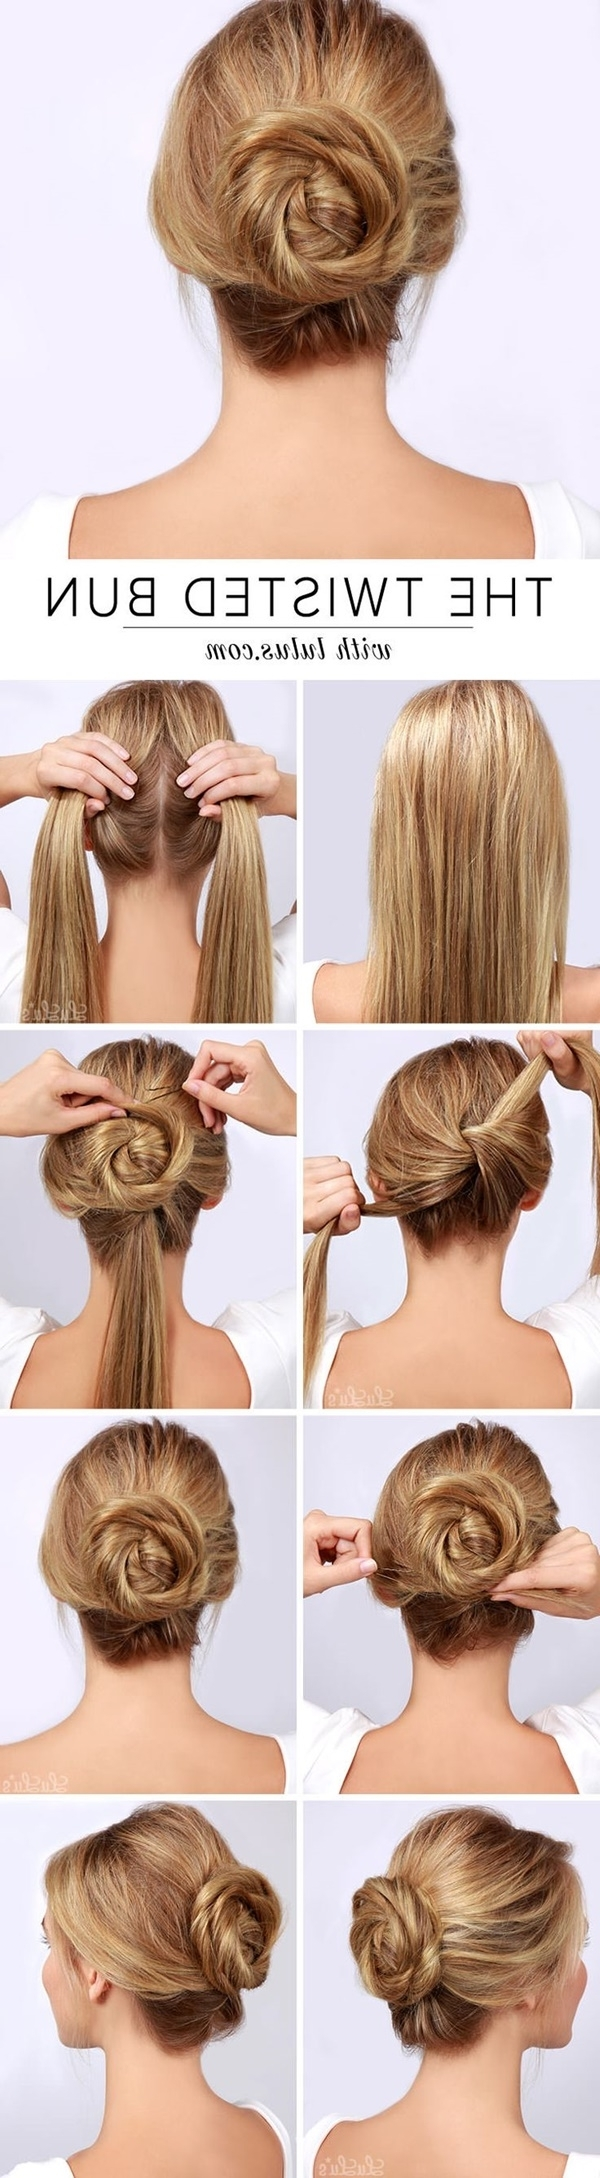 101 Cute & Easy Bun Hairstyles For Long Hair And Medium Hair Pertaining To Easy To Do Updo Hairstyles For Long Hair (View 1 of 15)